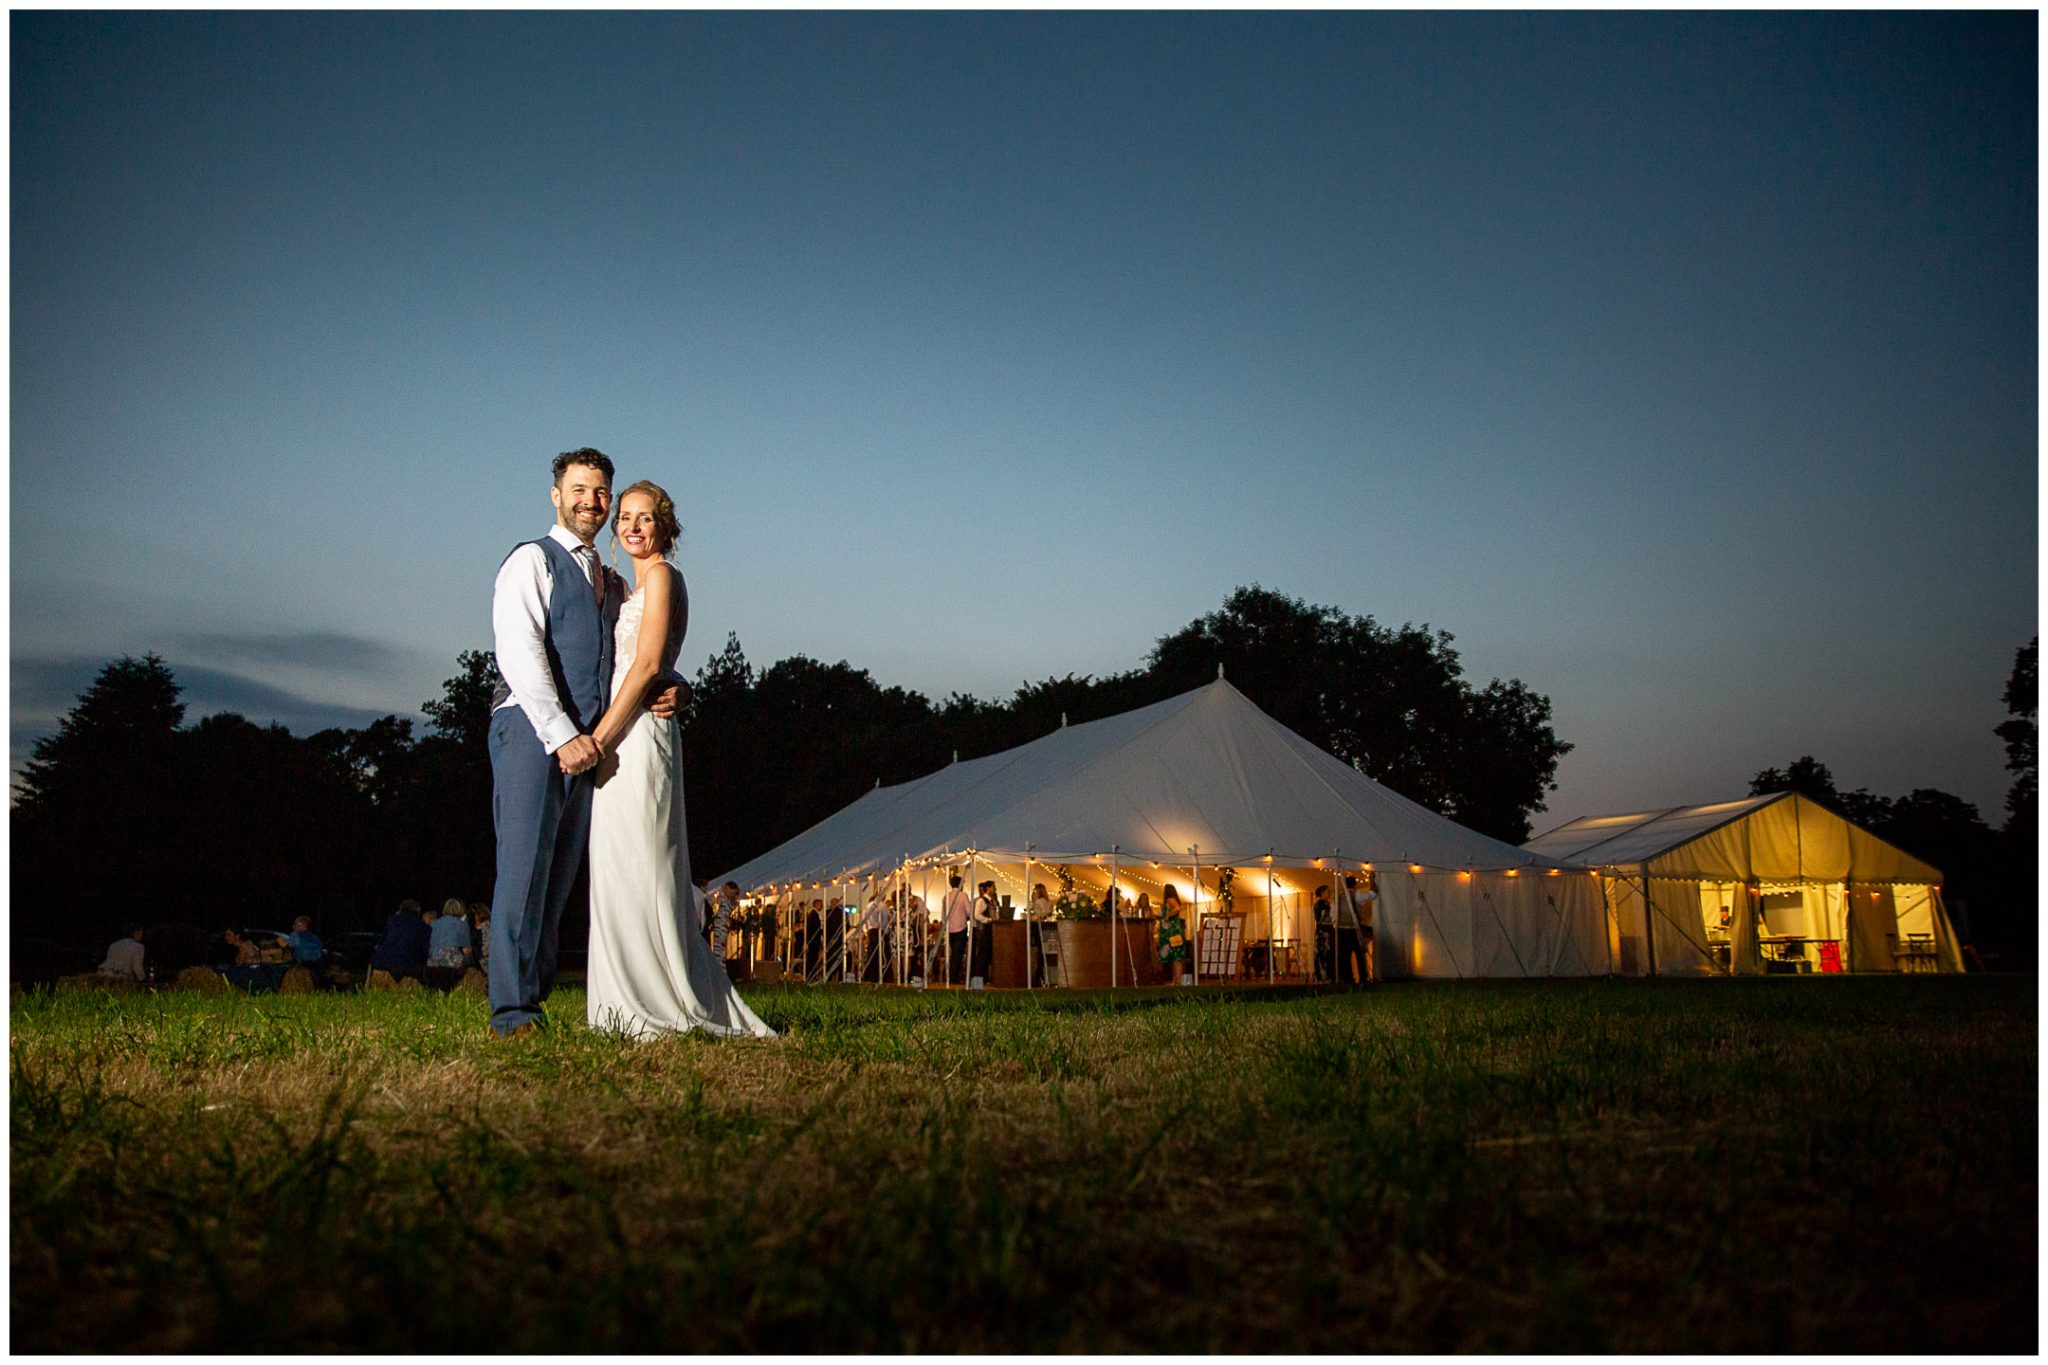 Couple portrait with wedding reception marquee lit up in the evening light